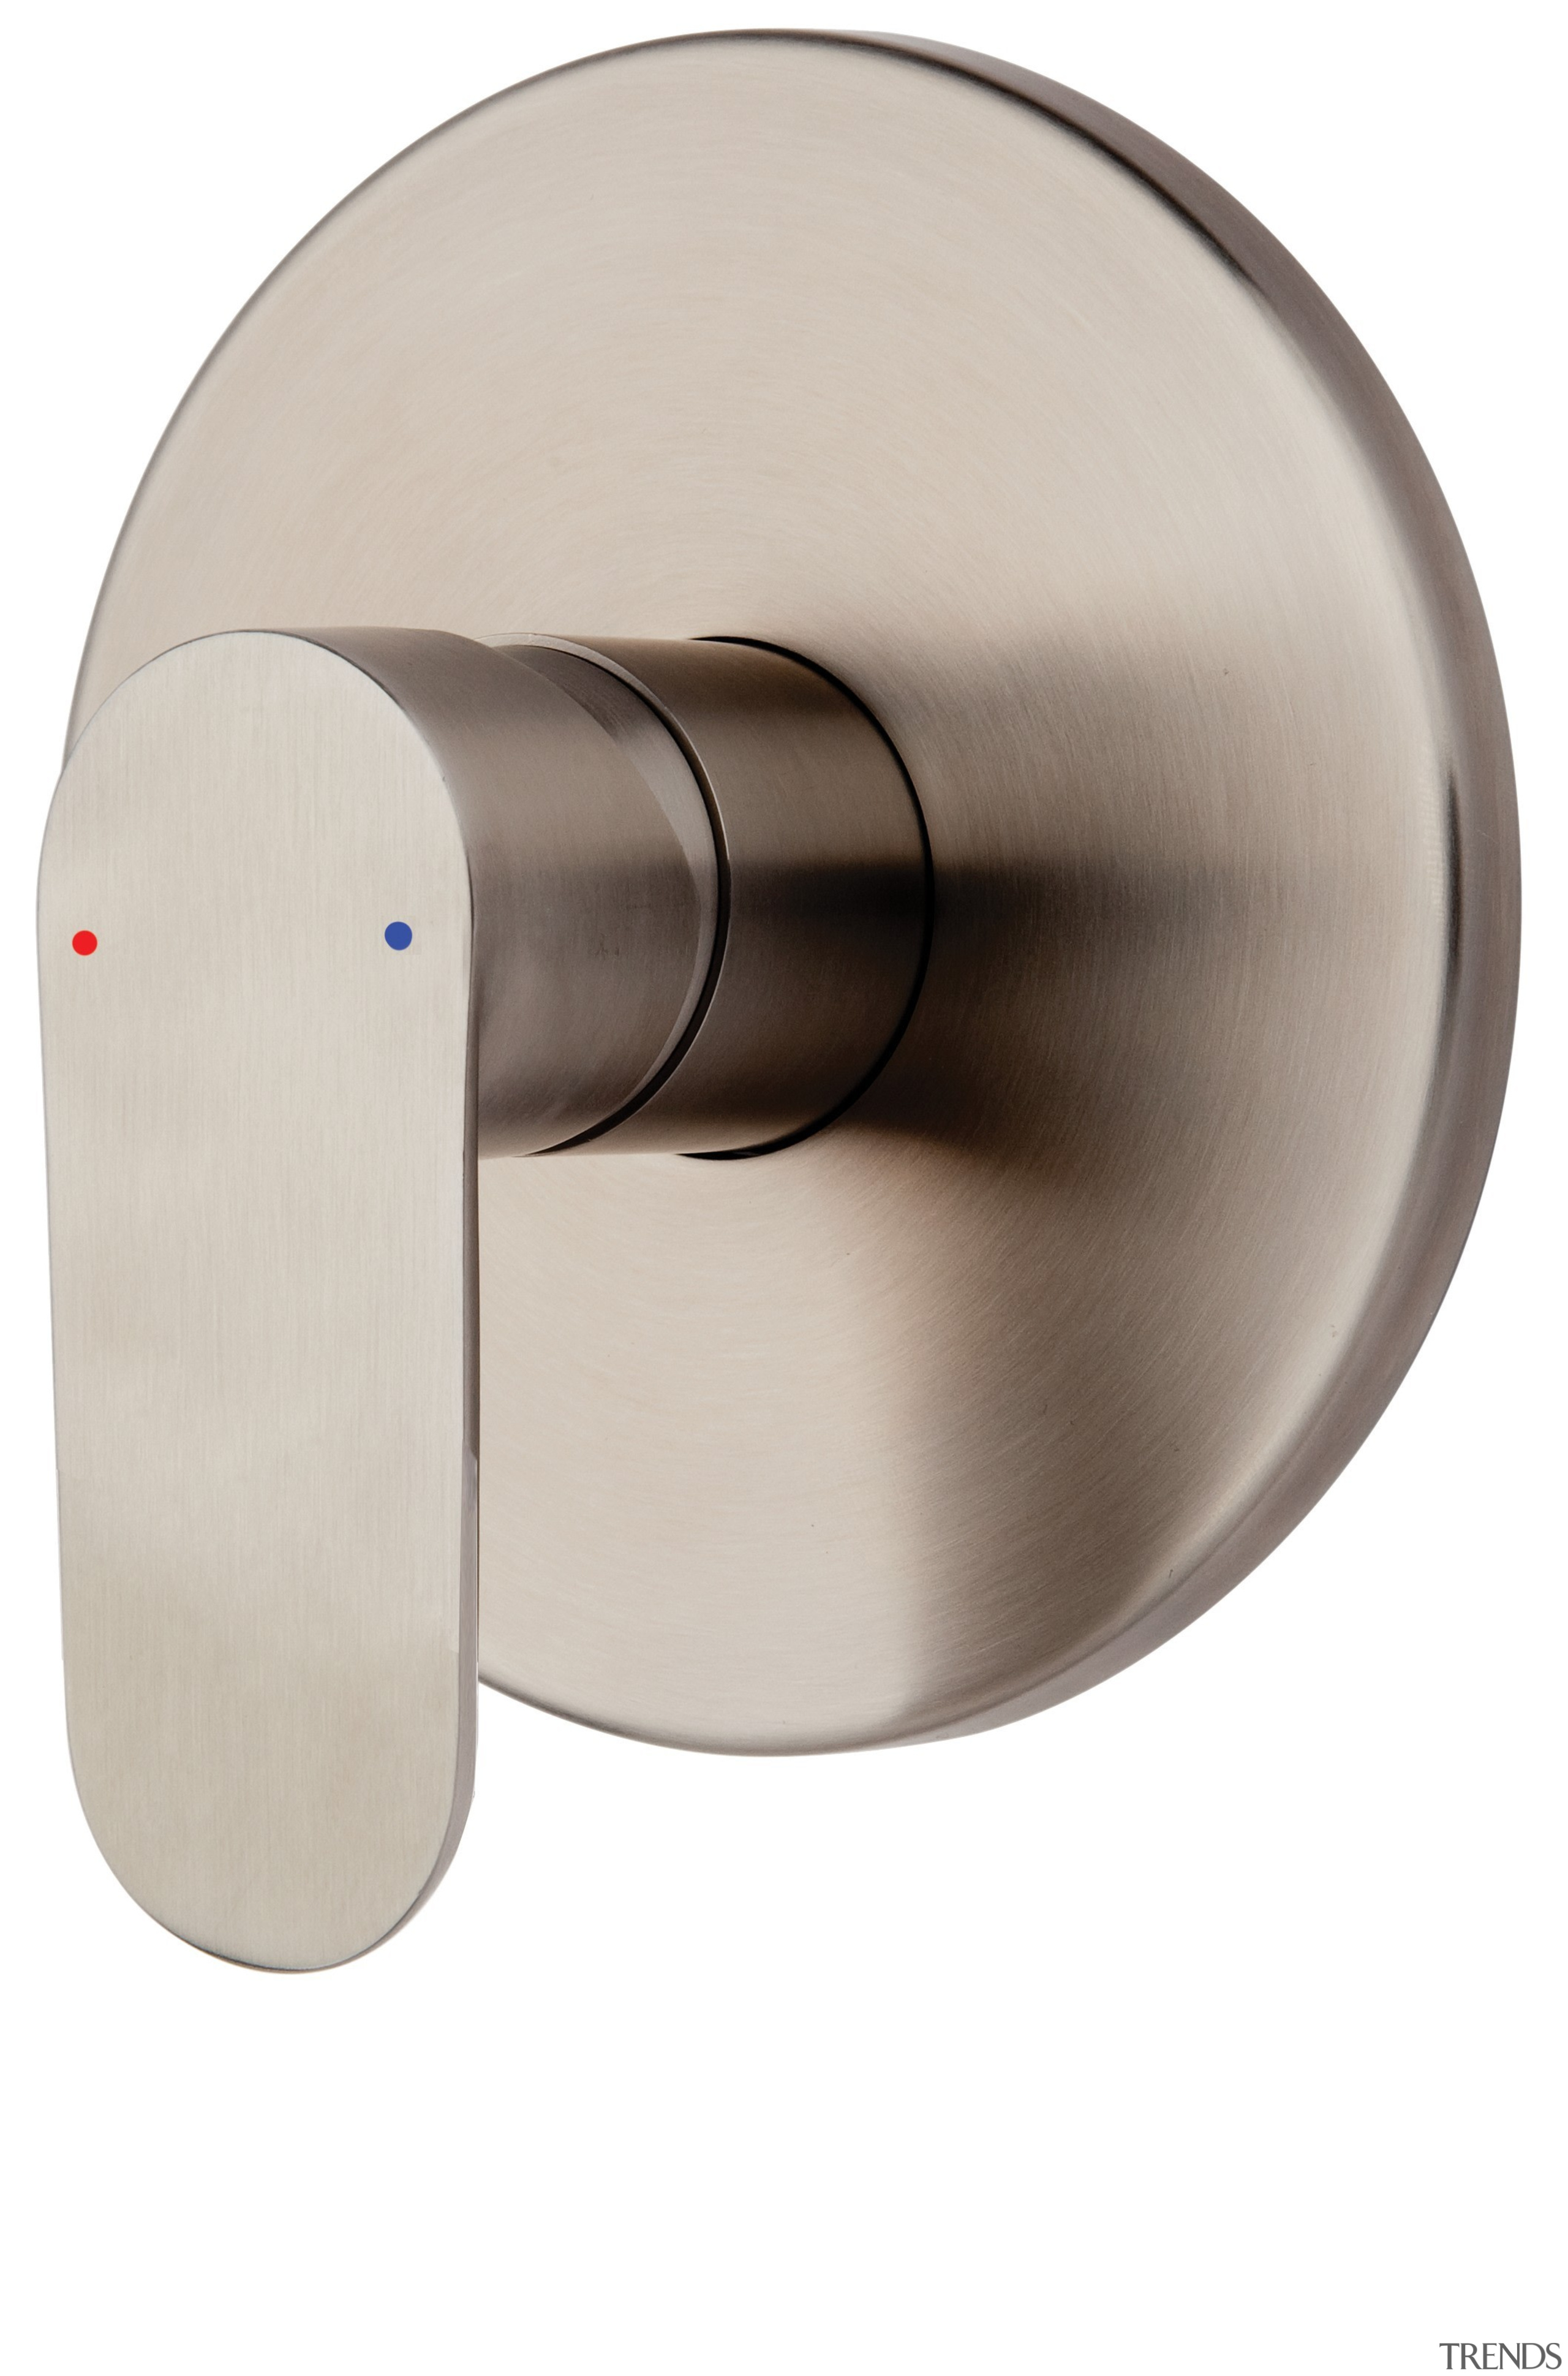 Purity Emotion Shower Mixer PUR030 - Purity Emotion hardware, product design, white